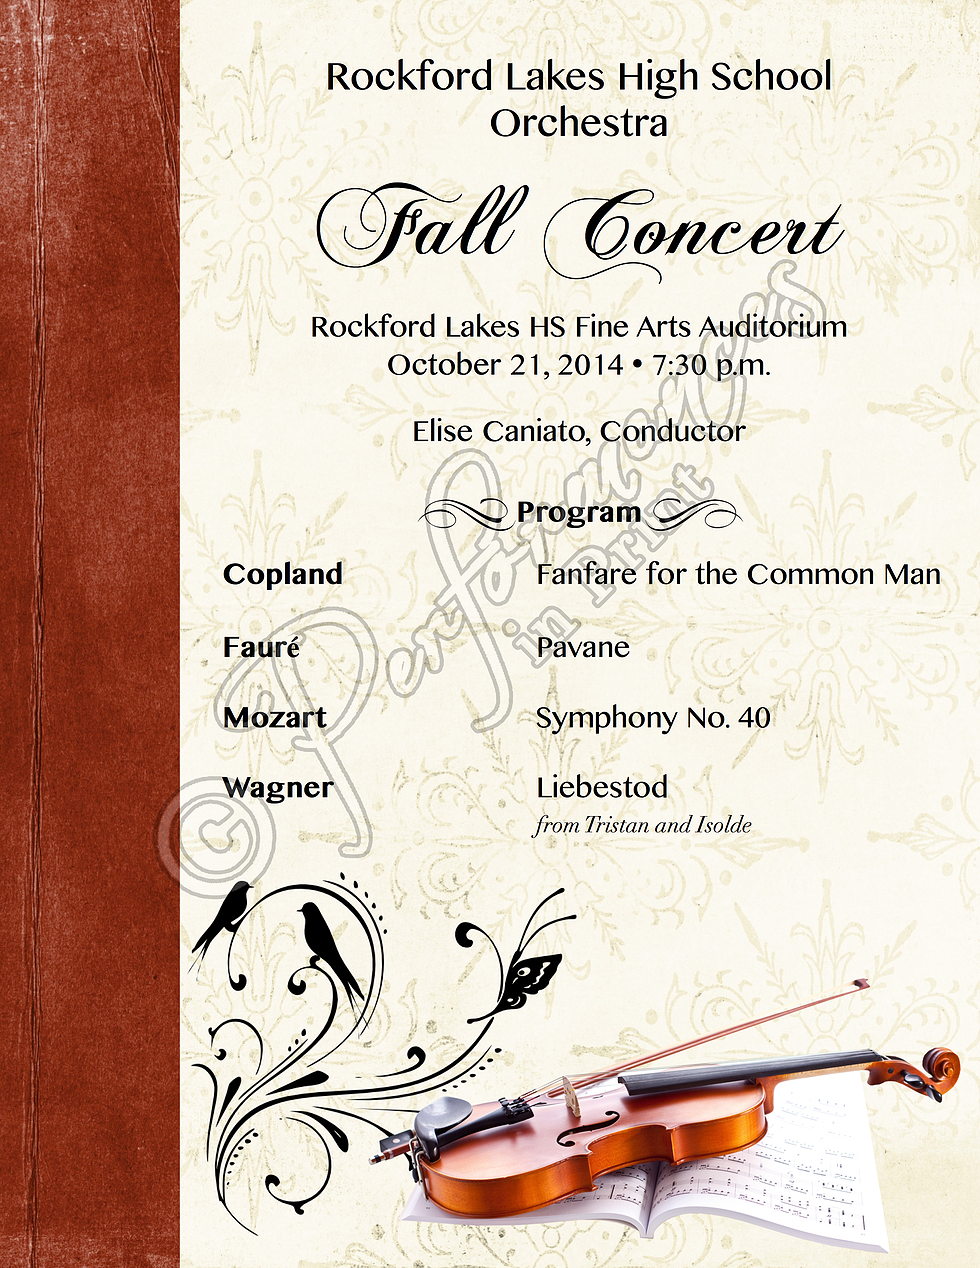 Orchestra Fall Concert Program High School Music  Concert